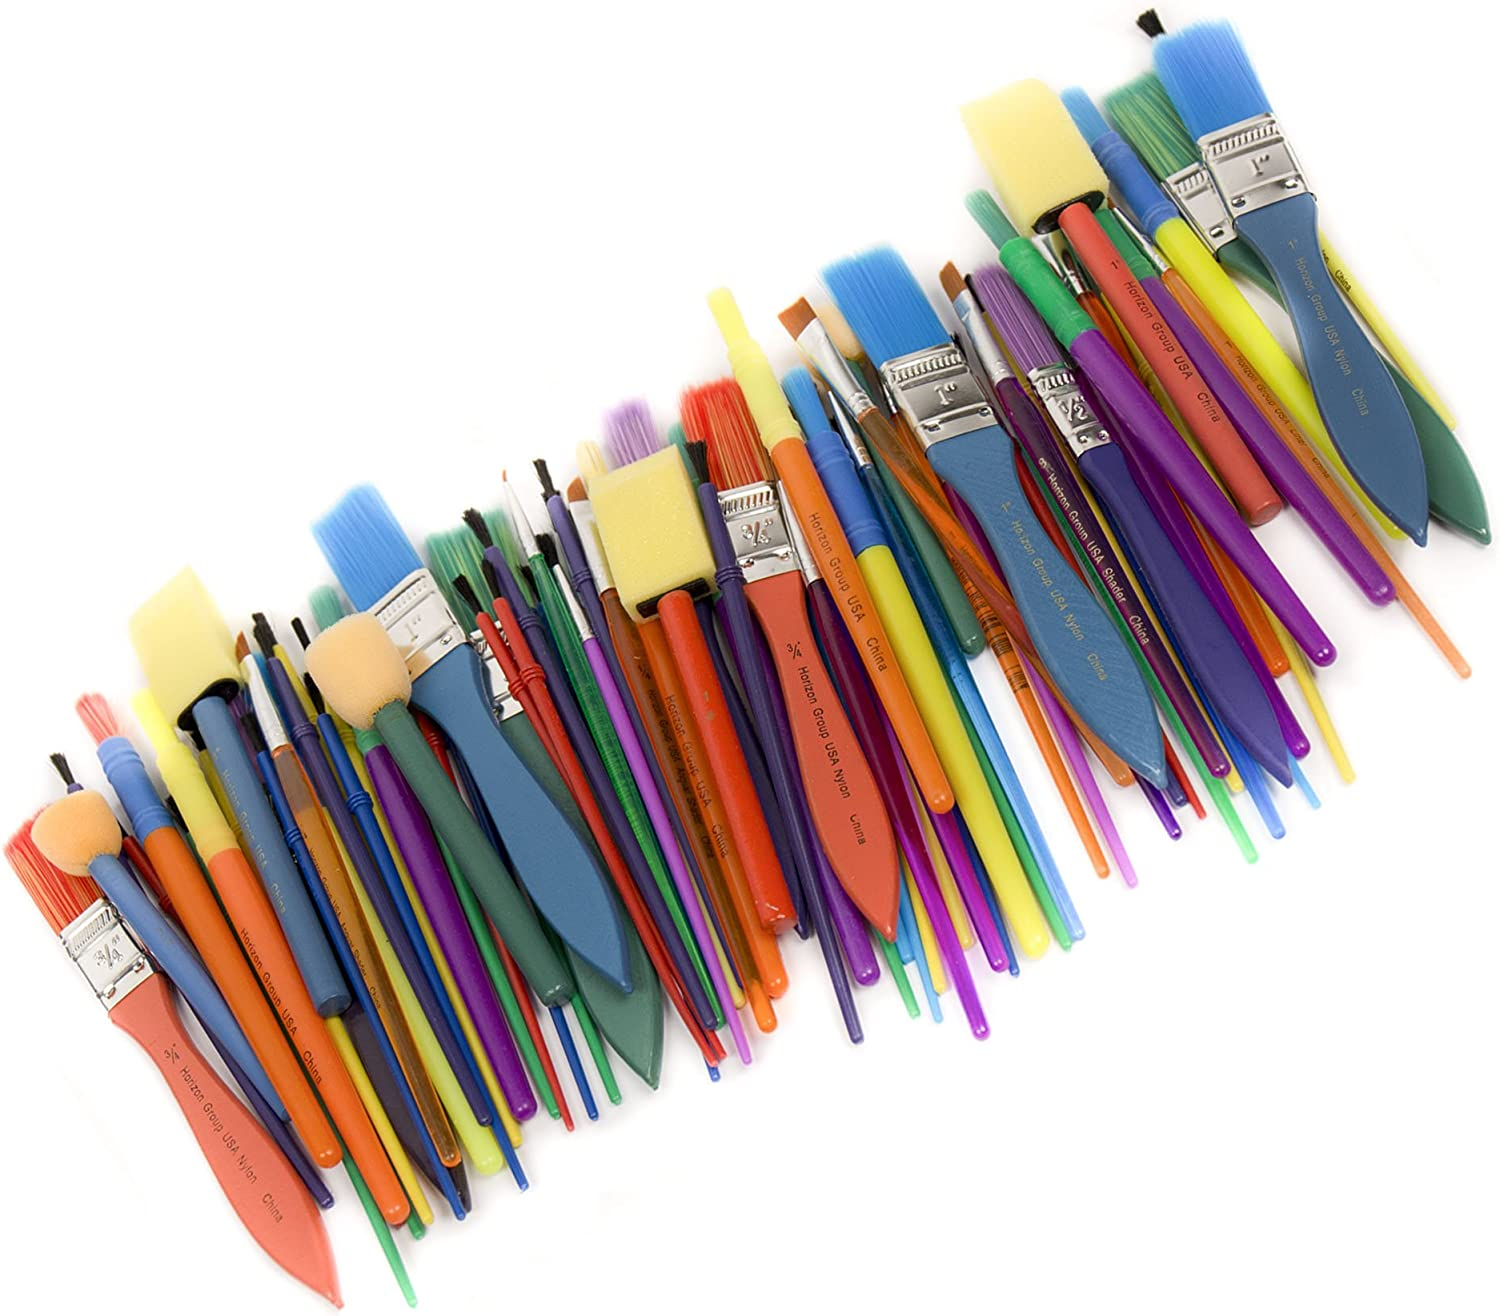 Horizon Group USA Paint Brushes -35 All Purpose Paint Brushes Value Pack – Includes 8 Different Types of Brushes, Great with Watercolors, Acrylic & Washable Paints. Multicolored: Toys & Games